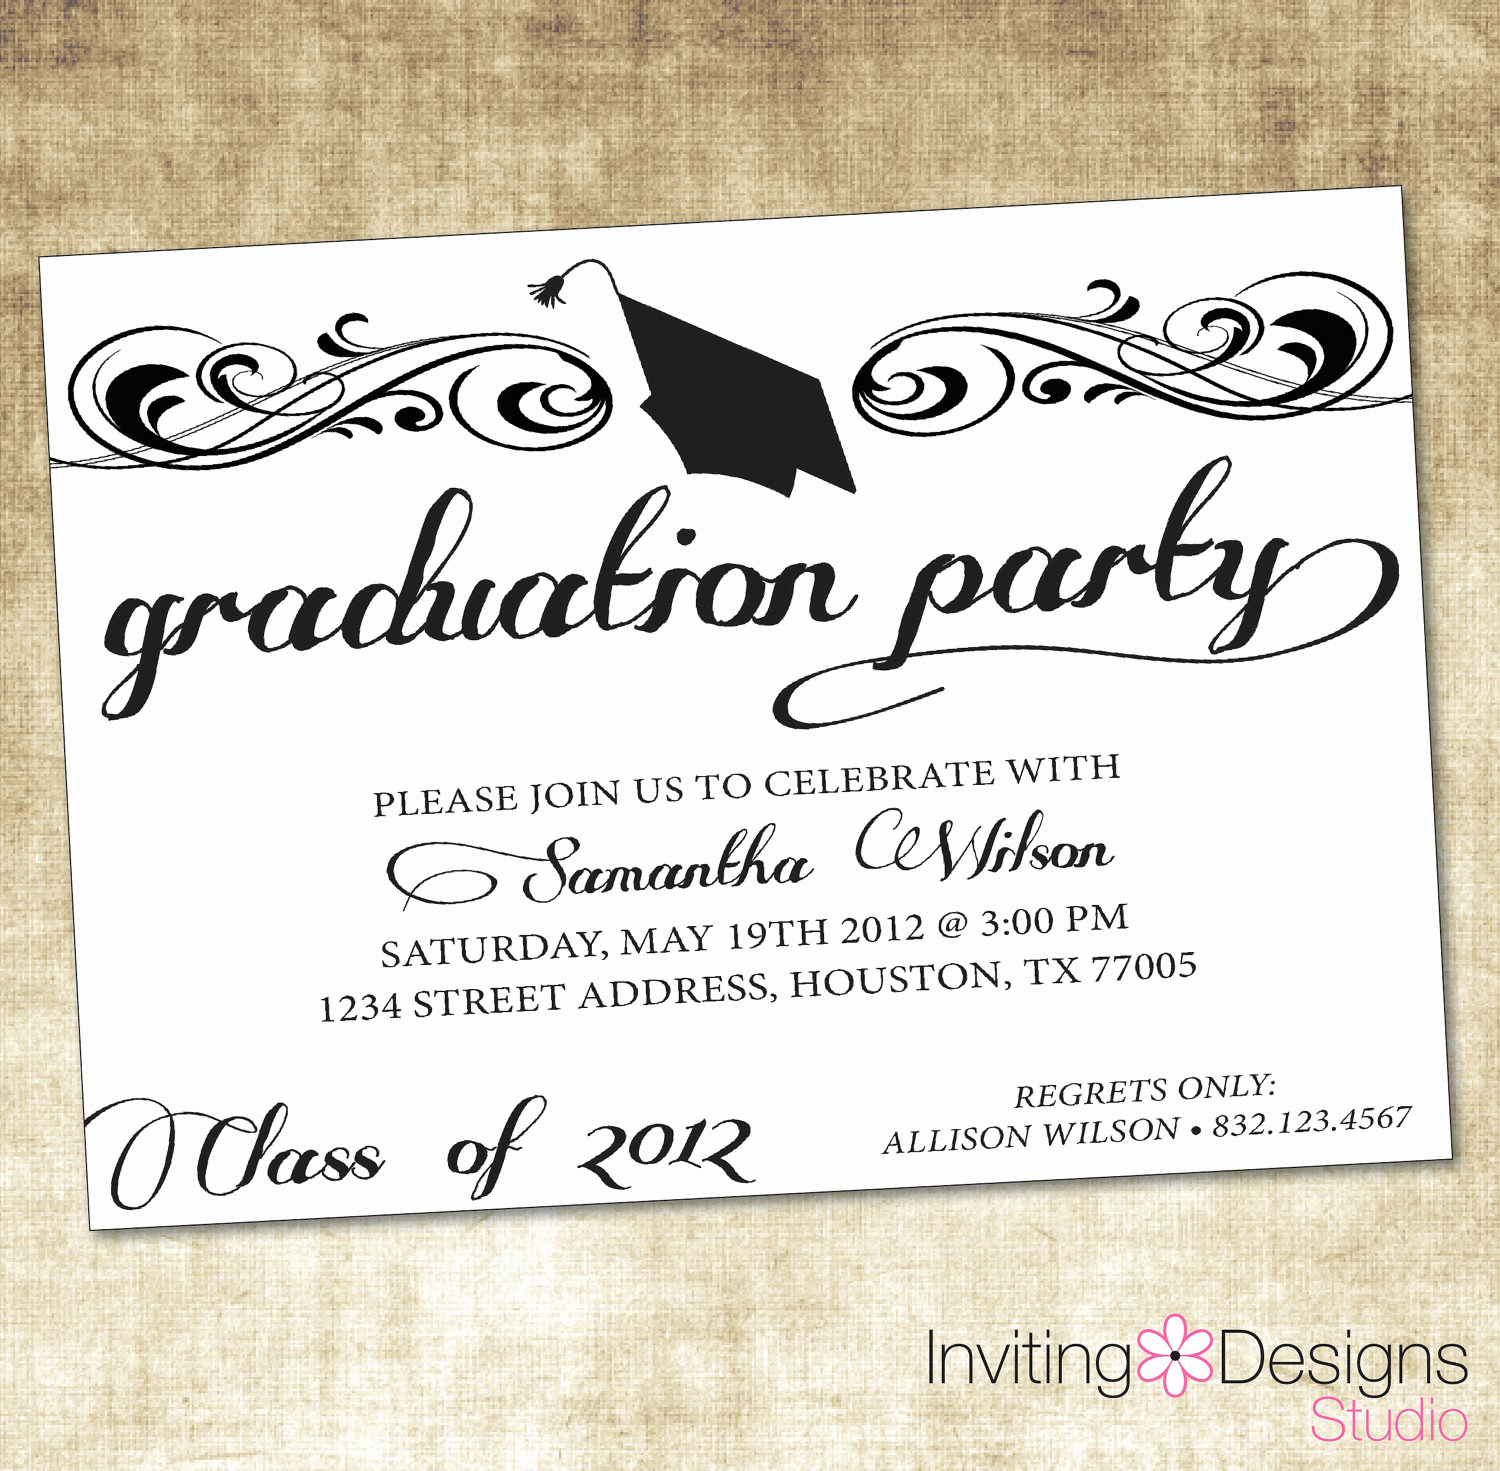 Graduation Party Invitation Messages Elegant Quotes for Graduation Party Invitations Quotesgram